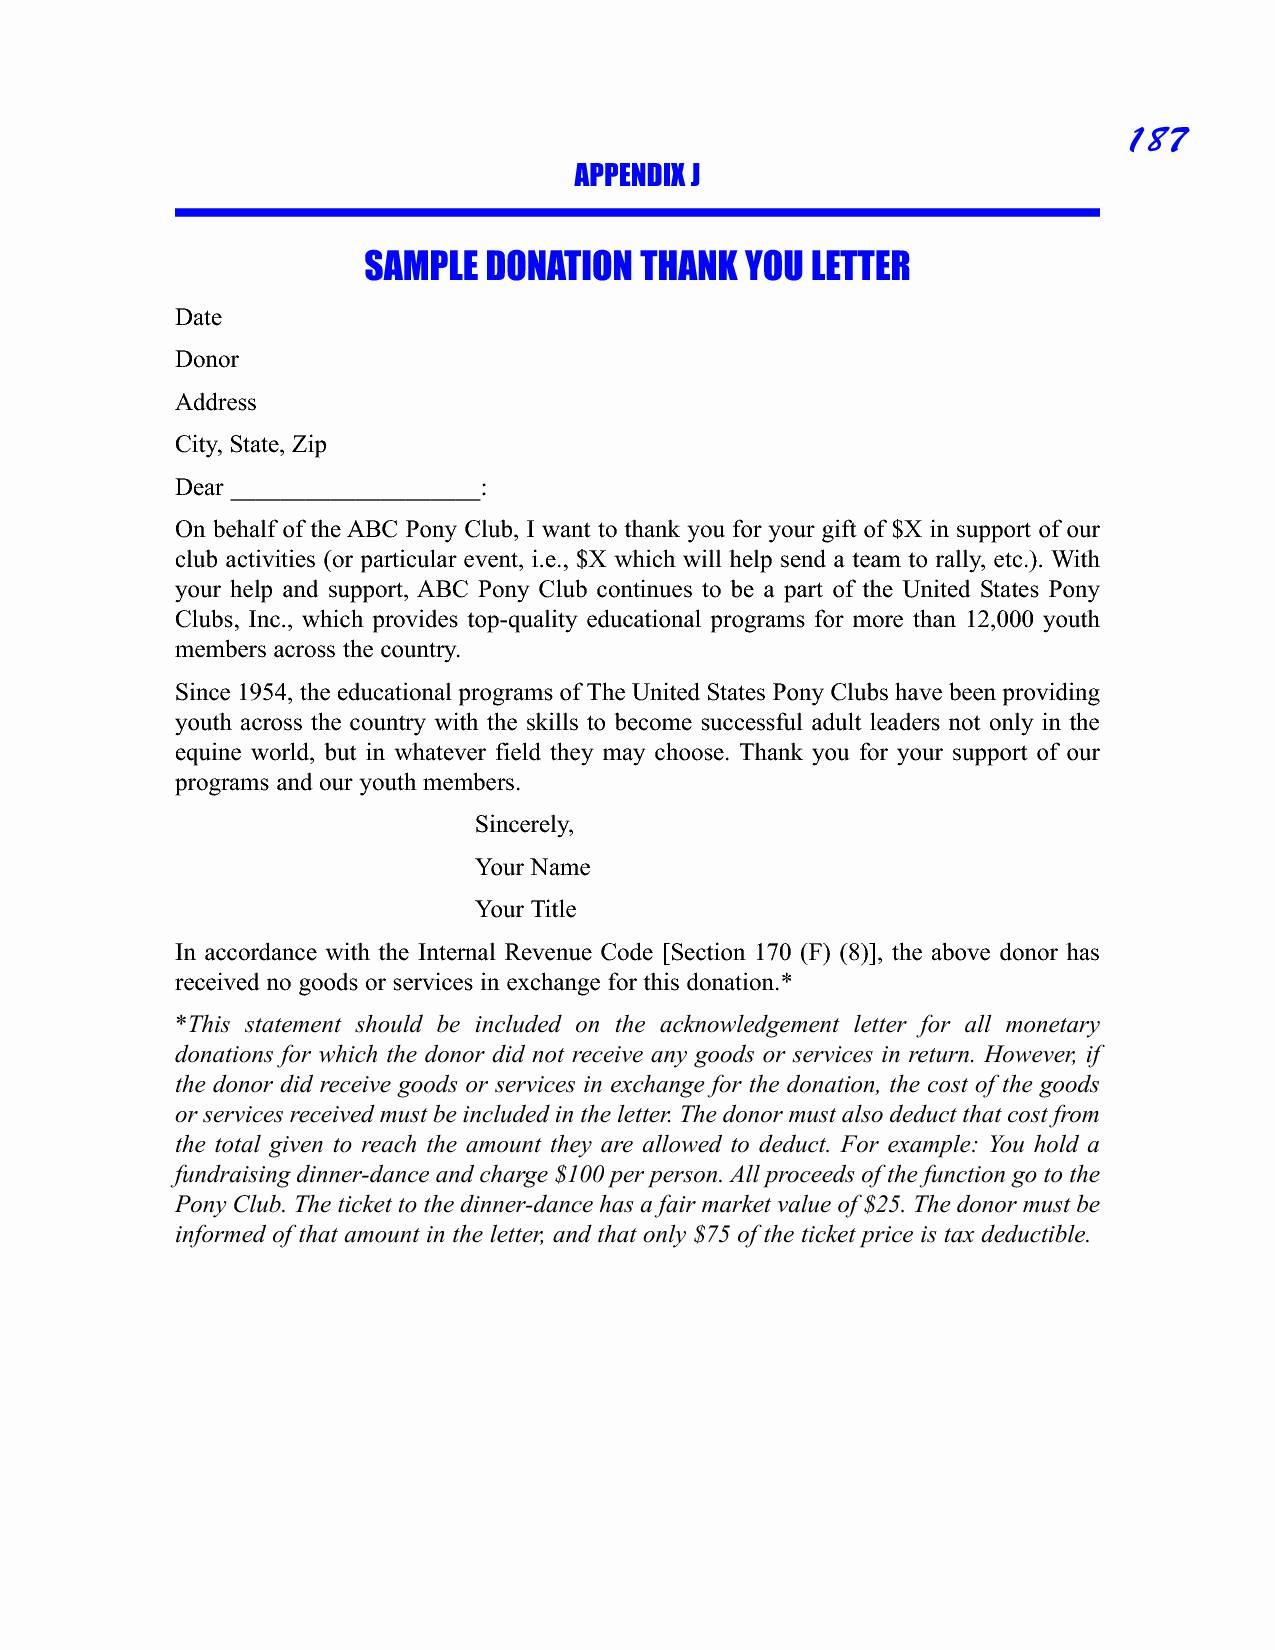 Donation Thank You Letter Template - Scholarship Guidelines Template Fresh Donation Thank You Letters